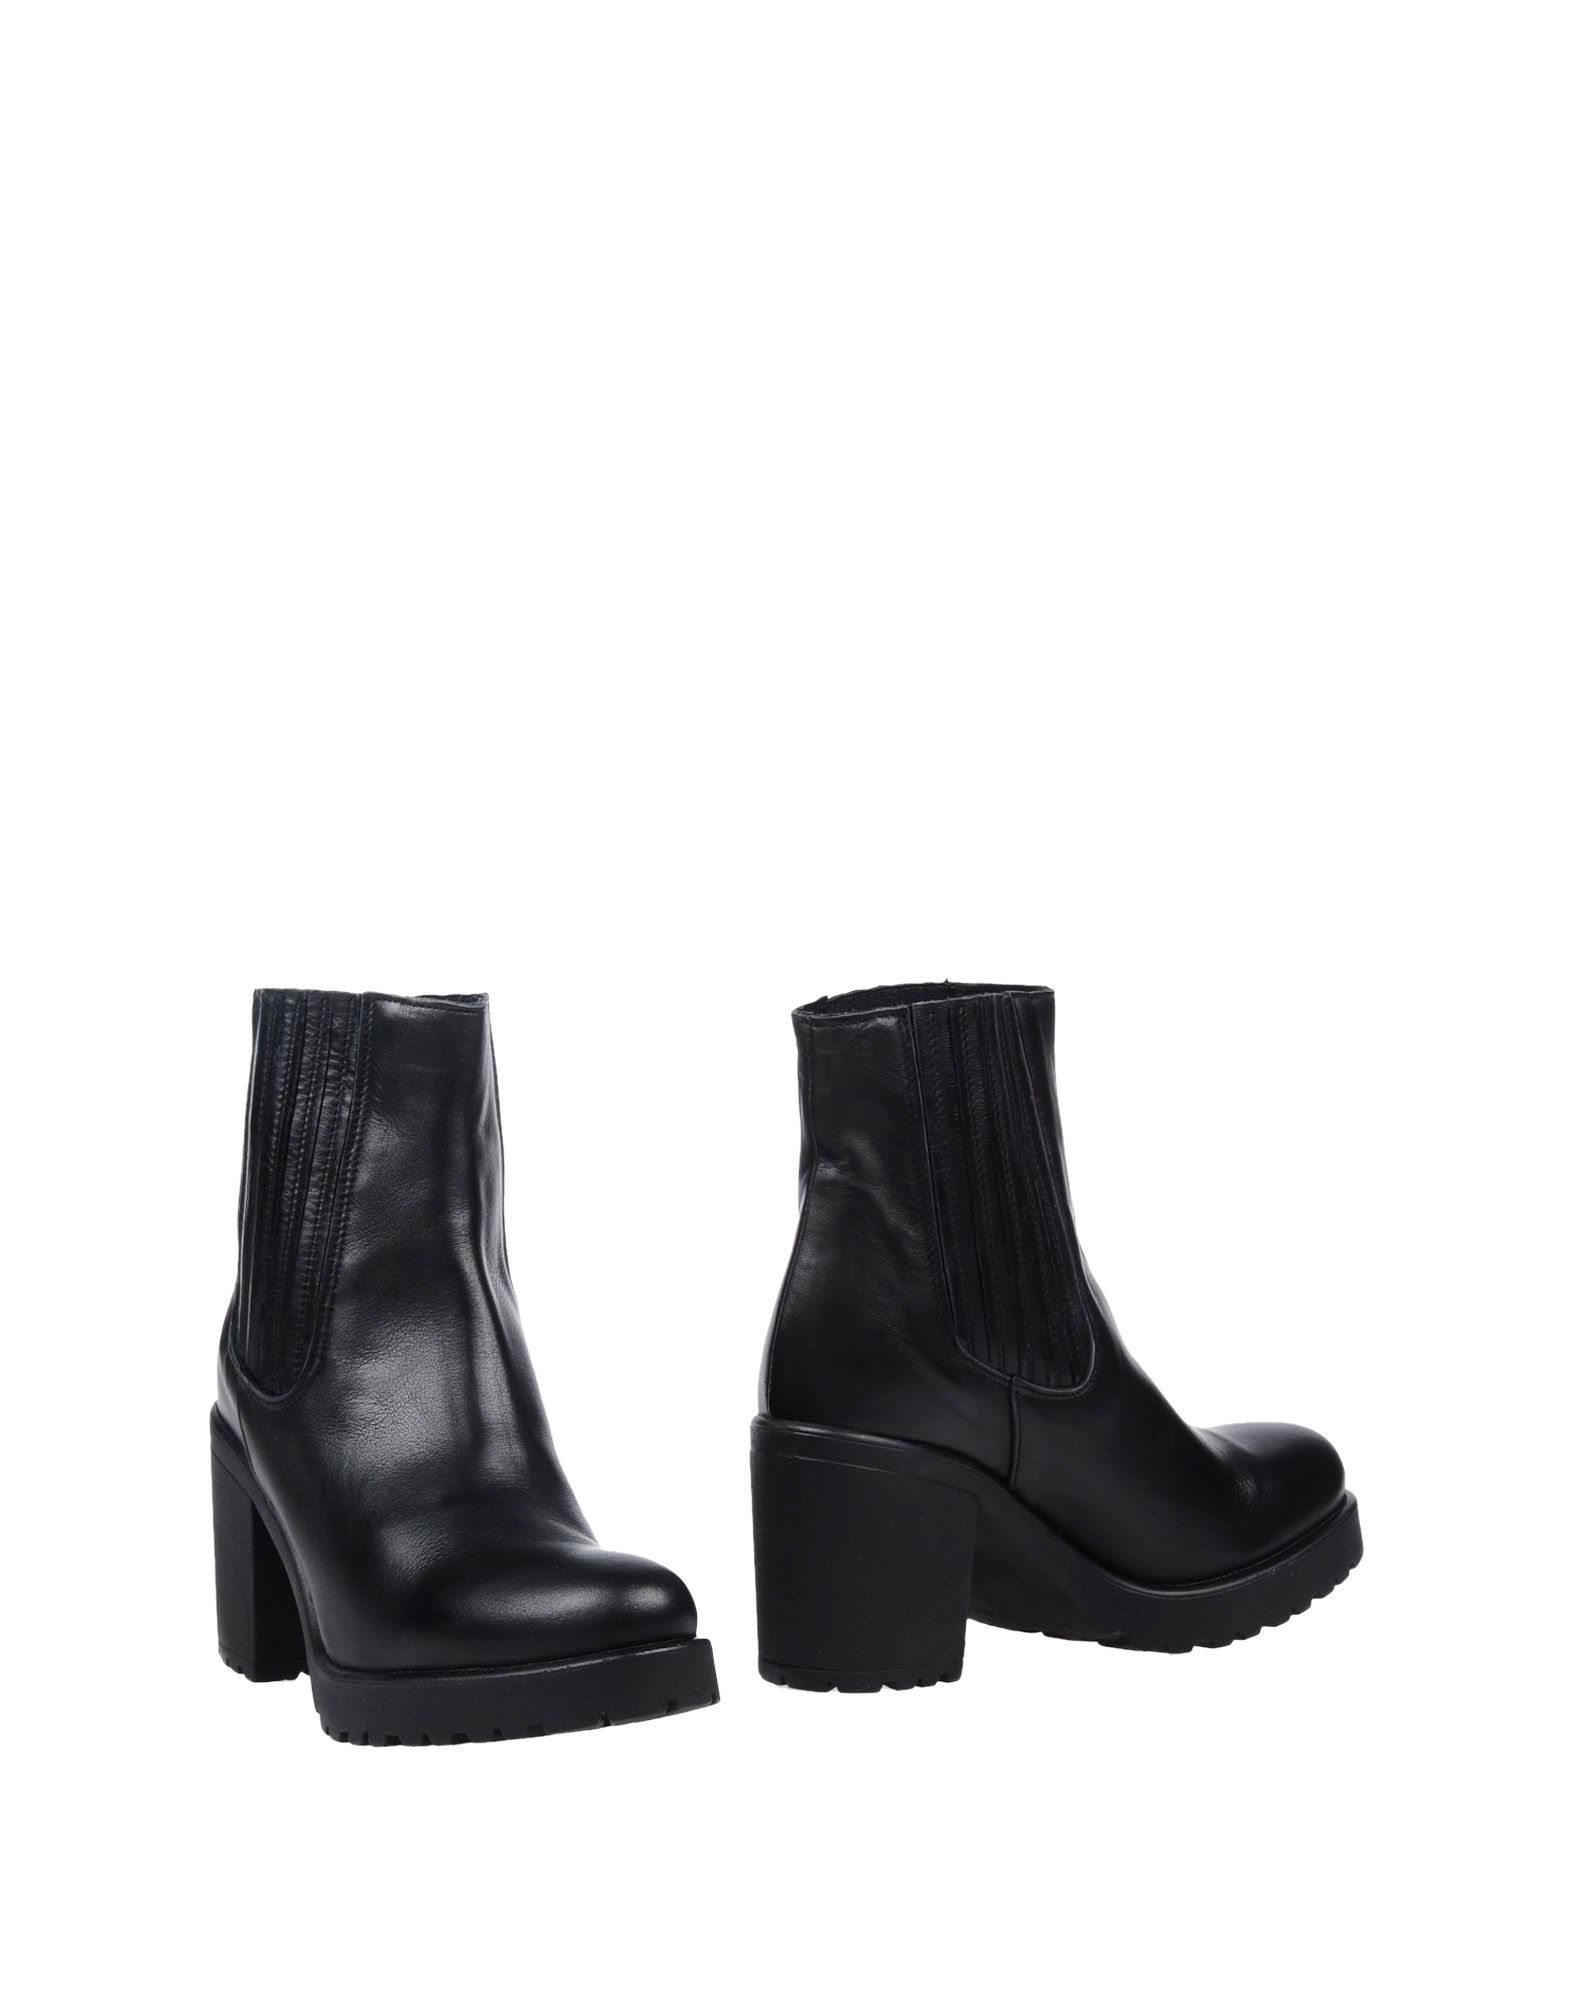 Bottine Stele Femme - Bottines Stele sur